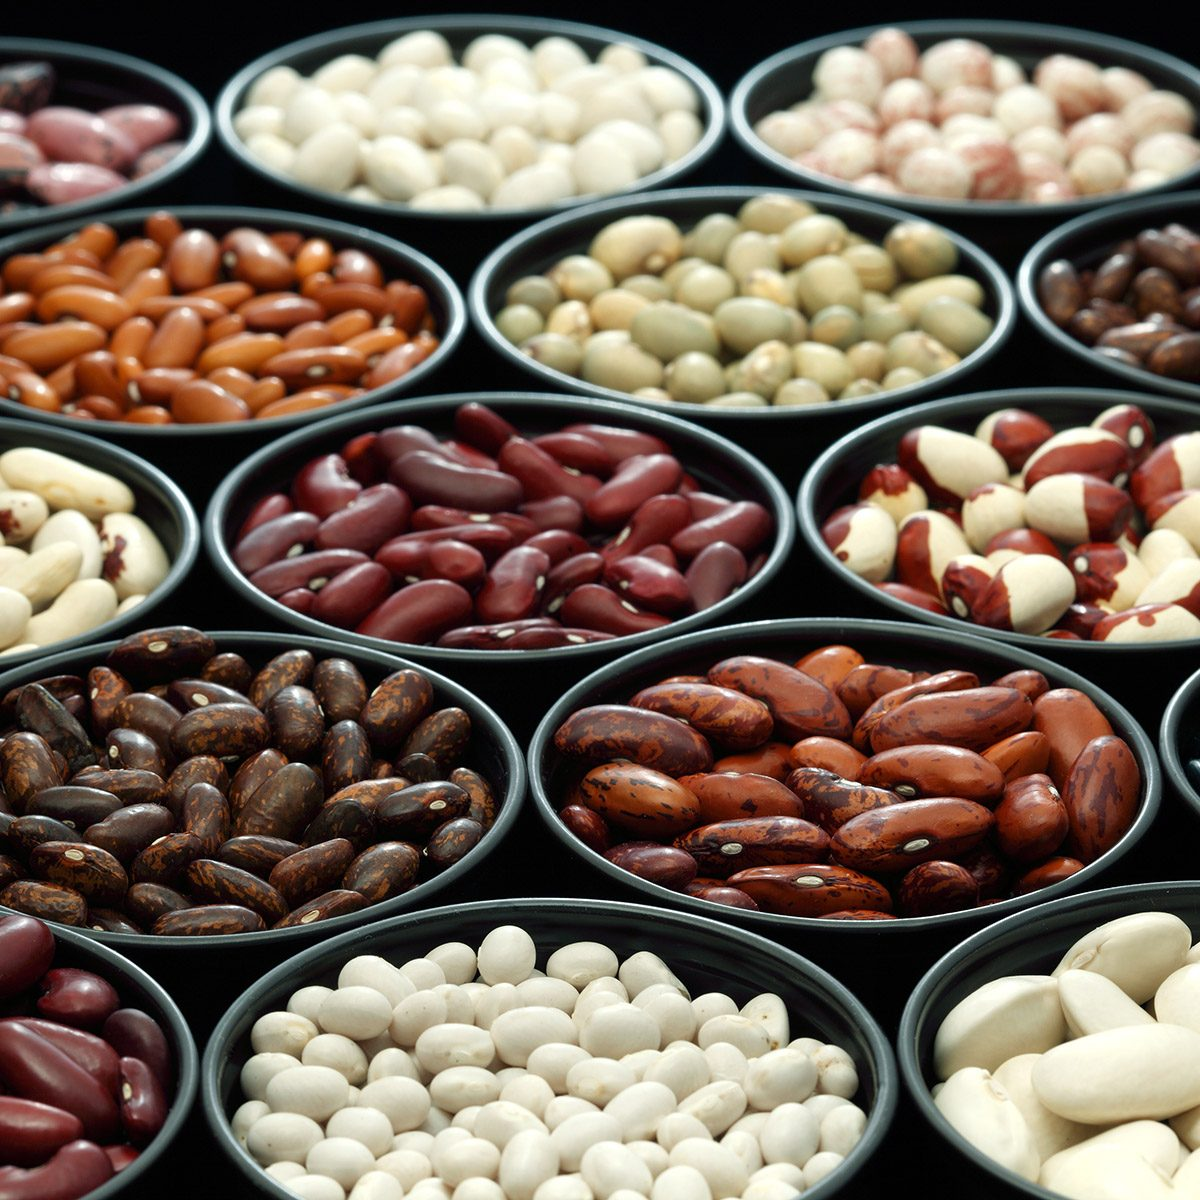 Different types of beans and lentils background